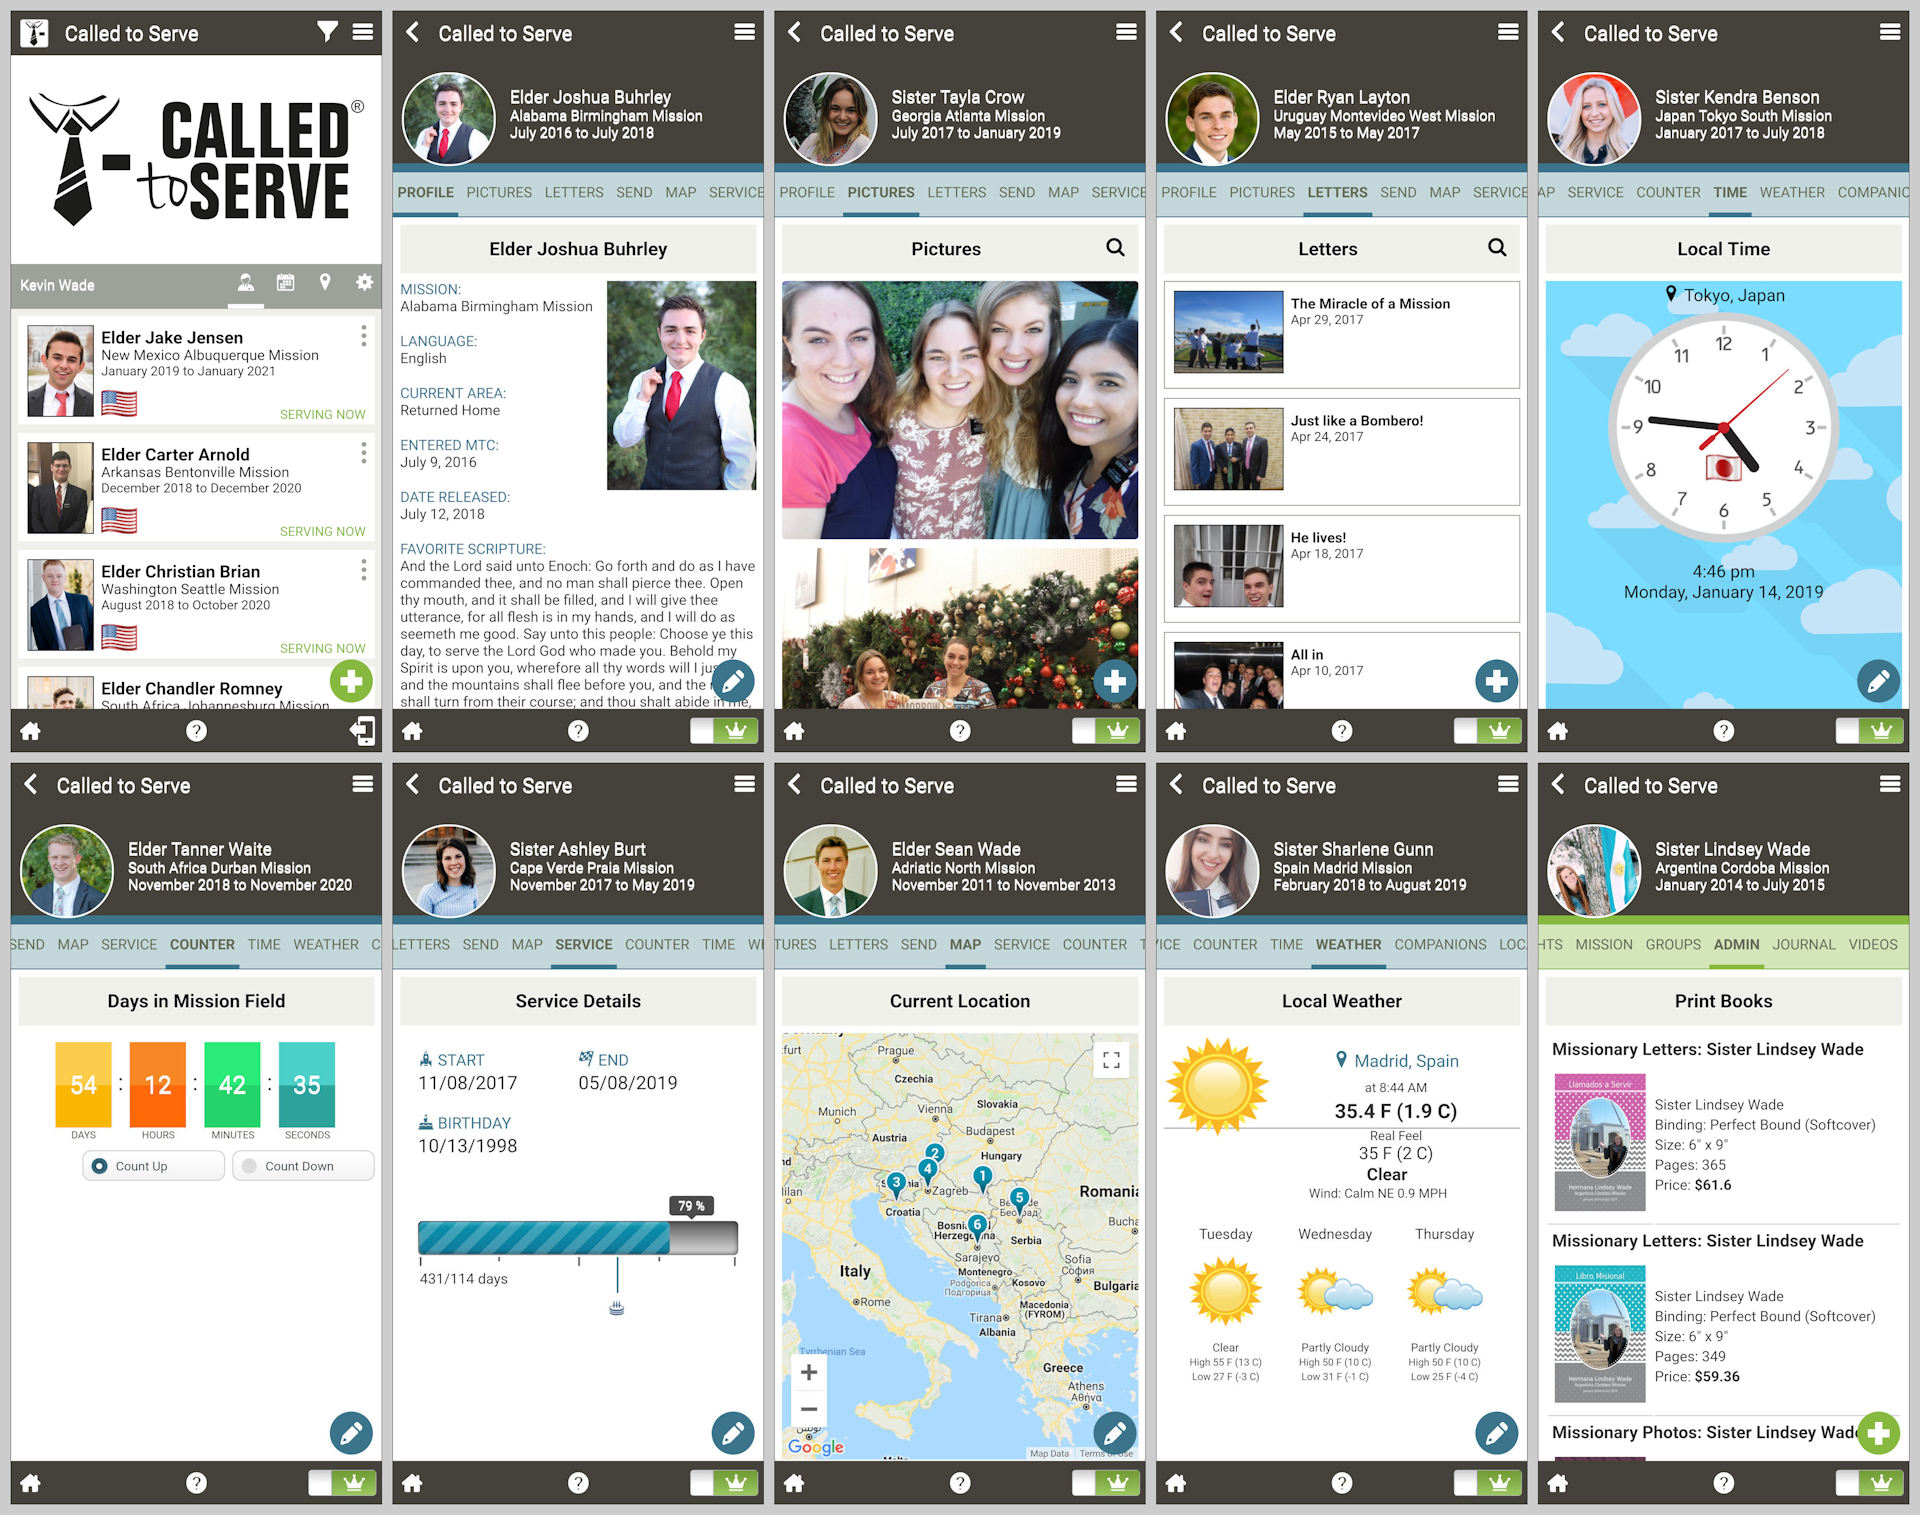 Ten different screenshots from the Called to Serve mobile app.